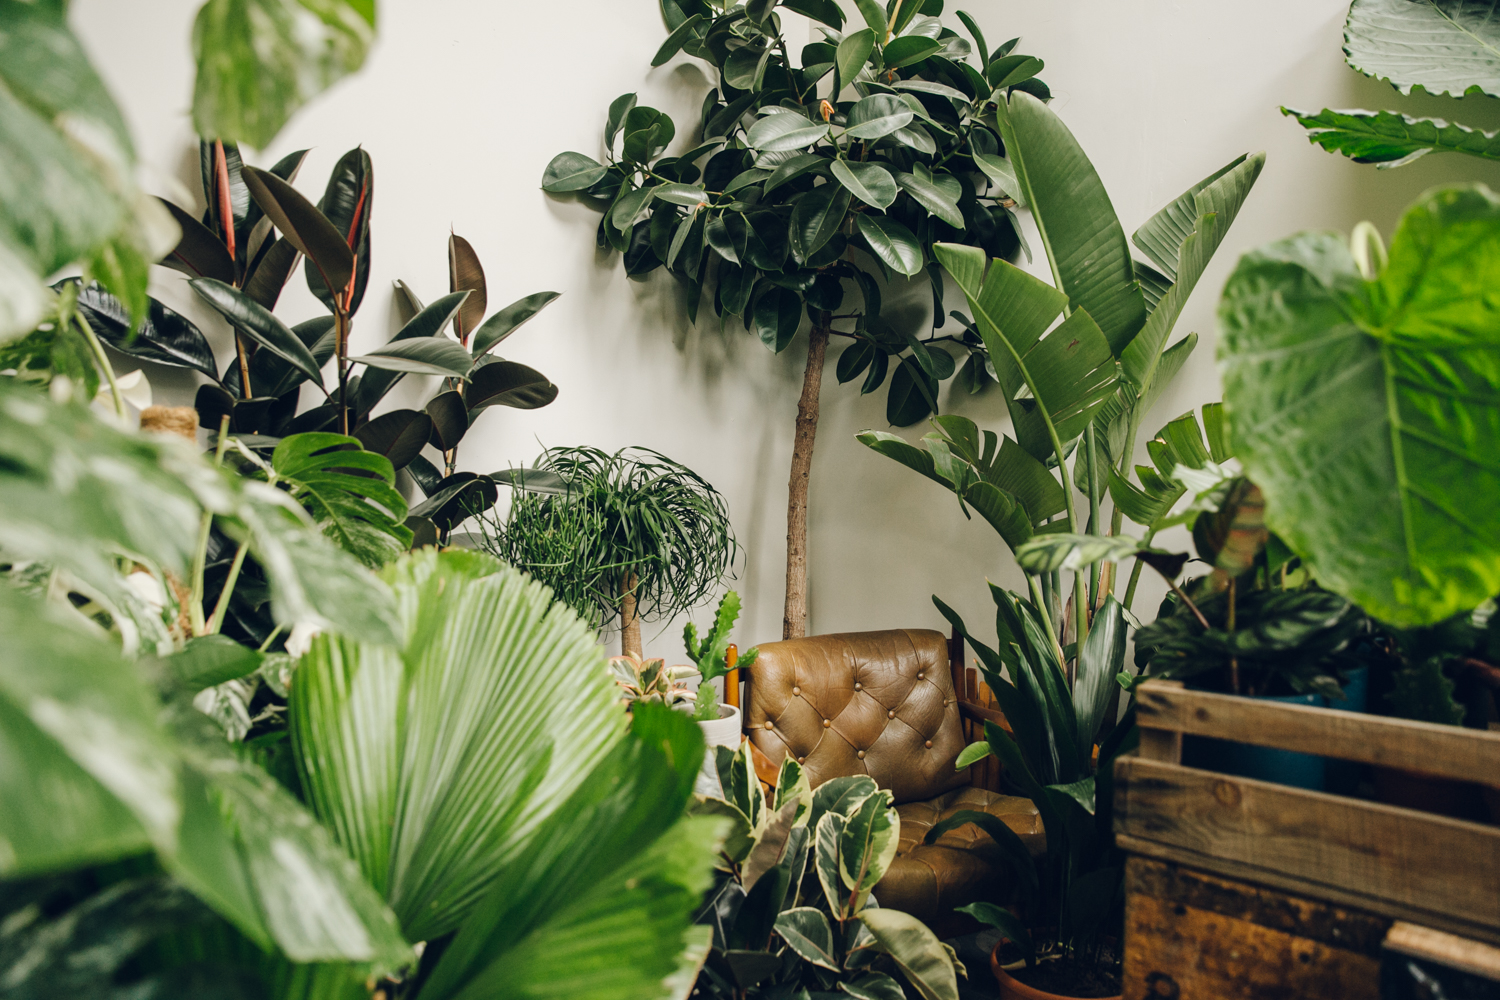 Inside the plant-filled Conservatory Archives in London.